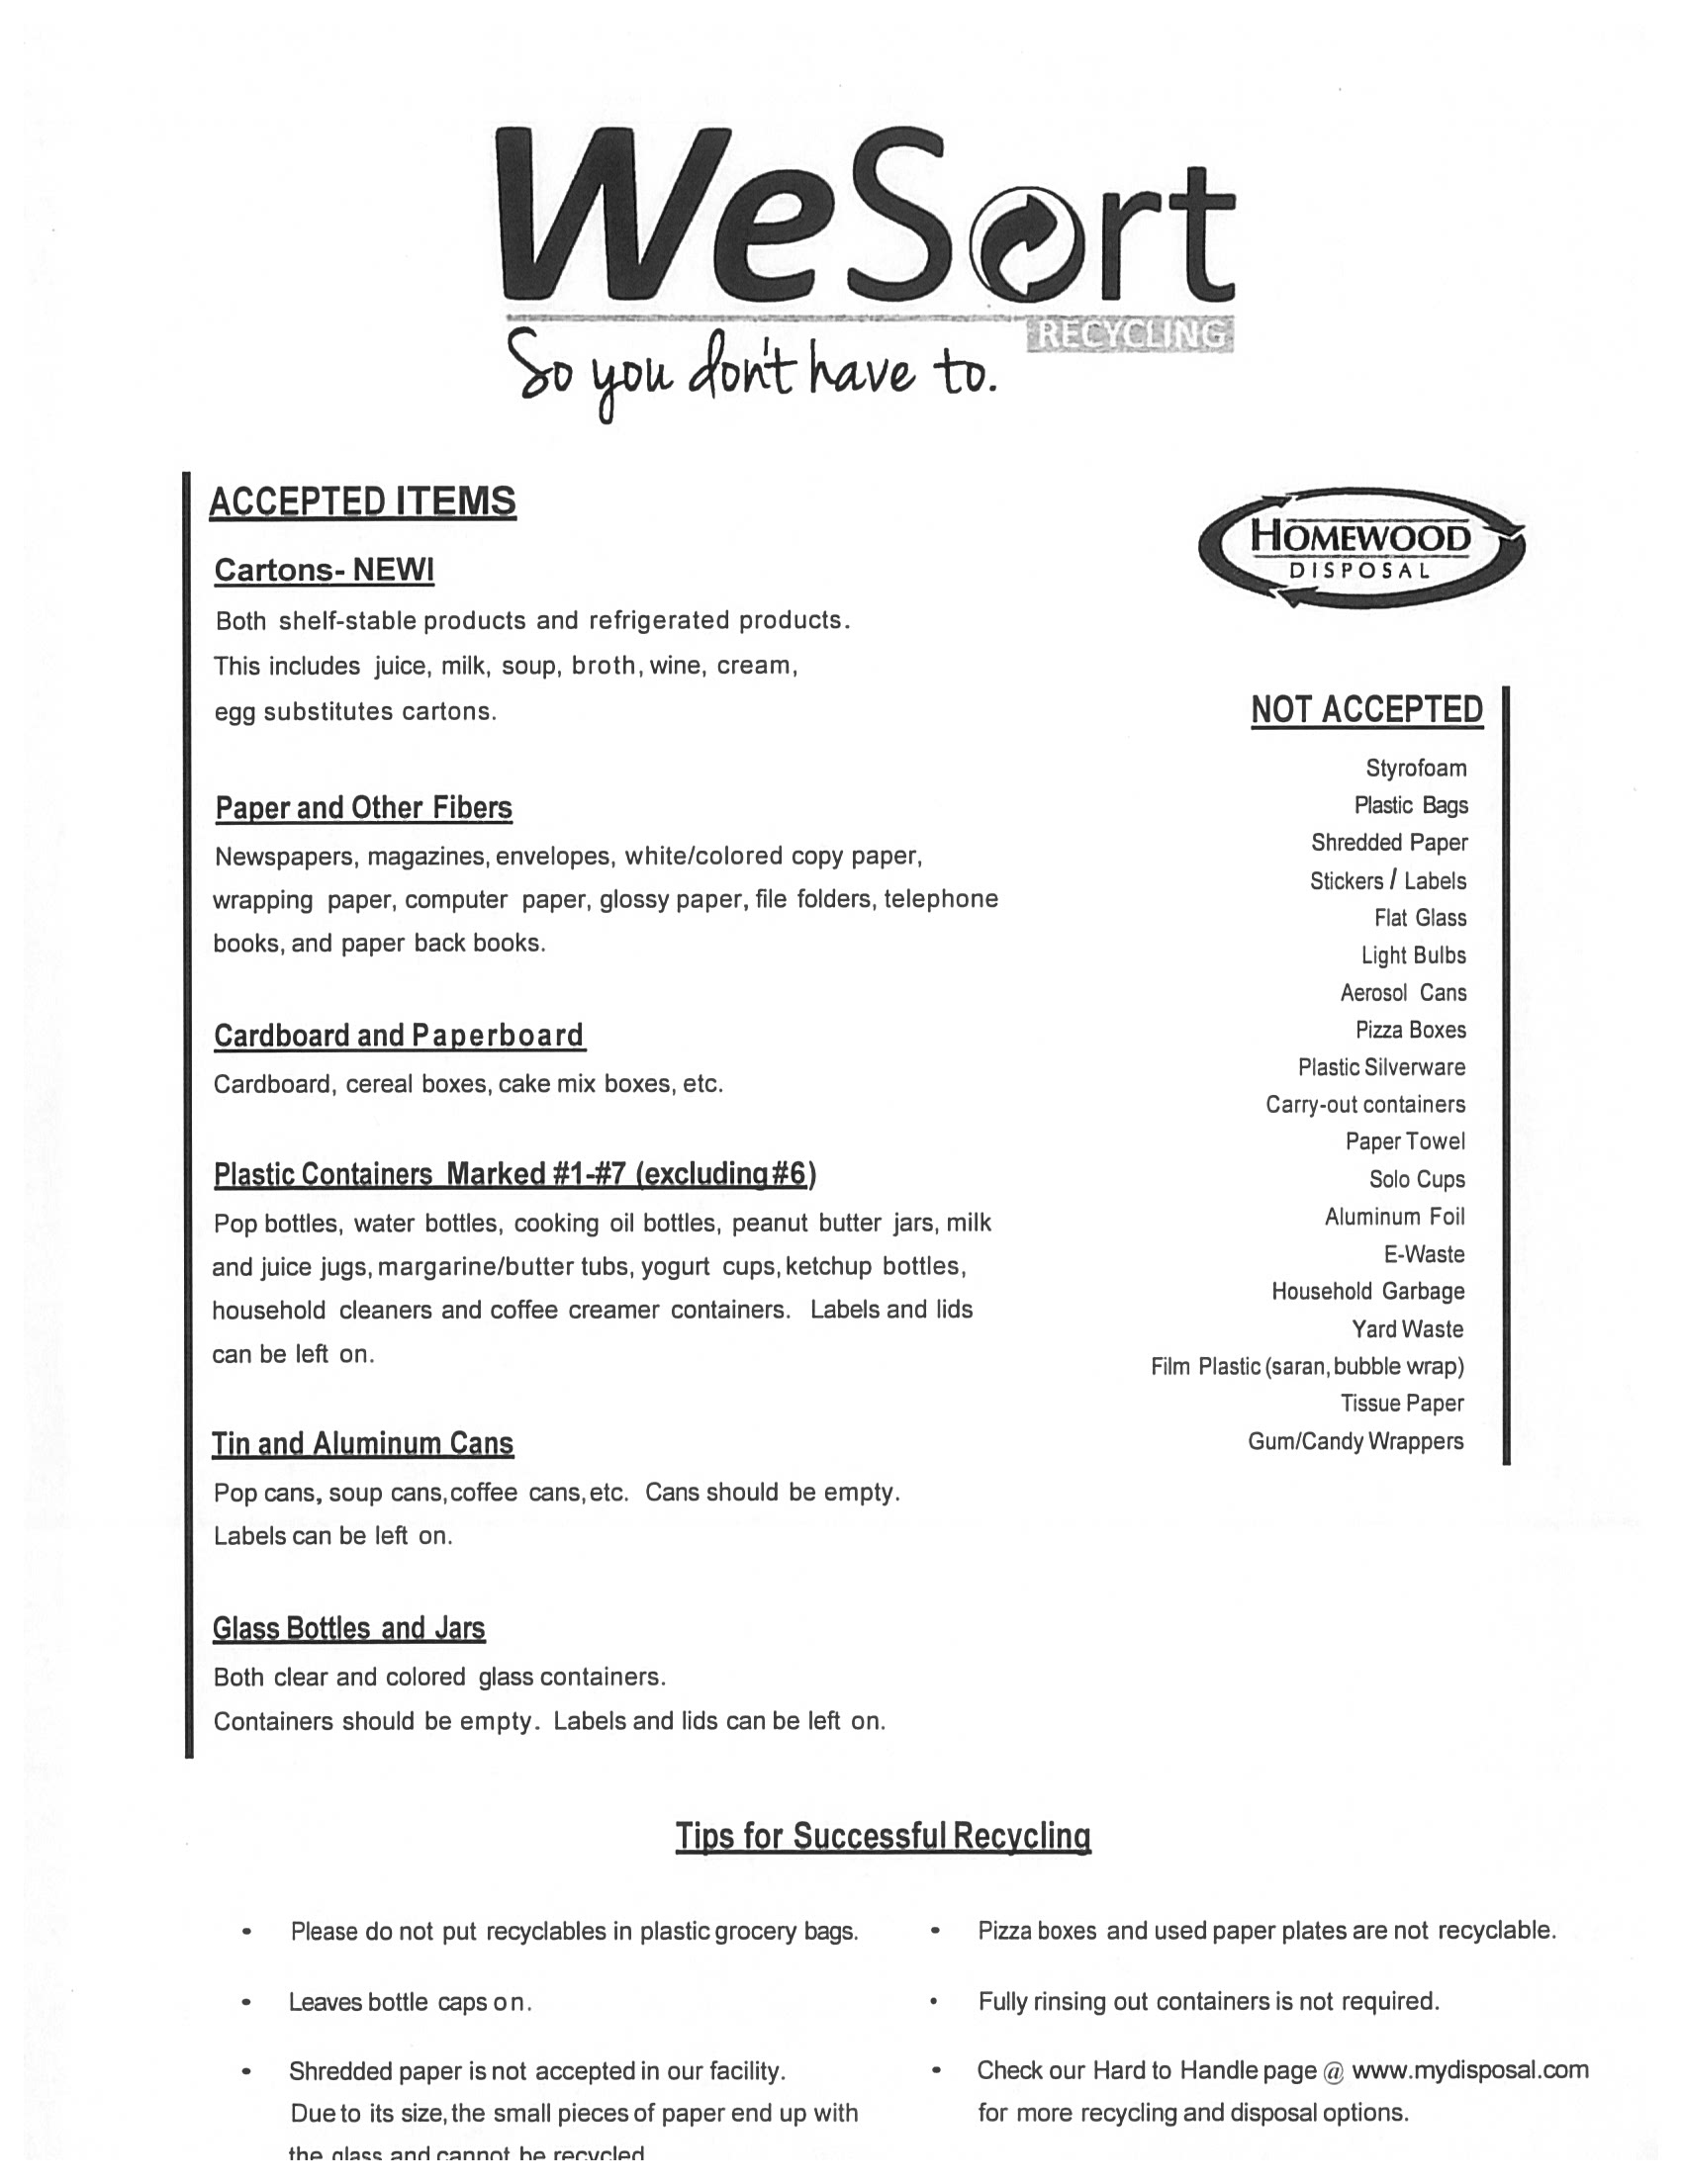 WeSort Accepted Items - Tips for Recycling.jpg